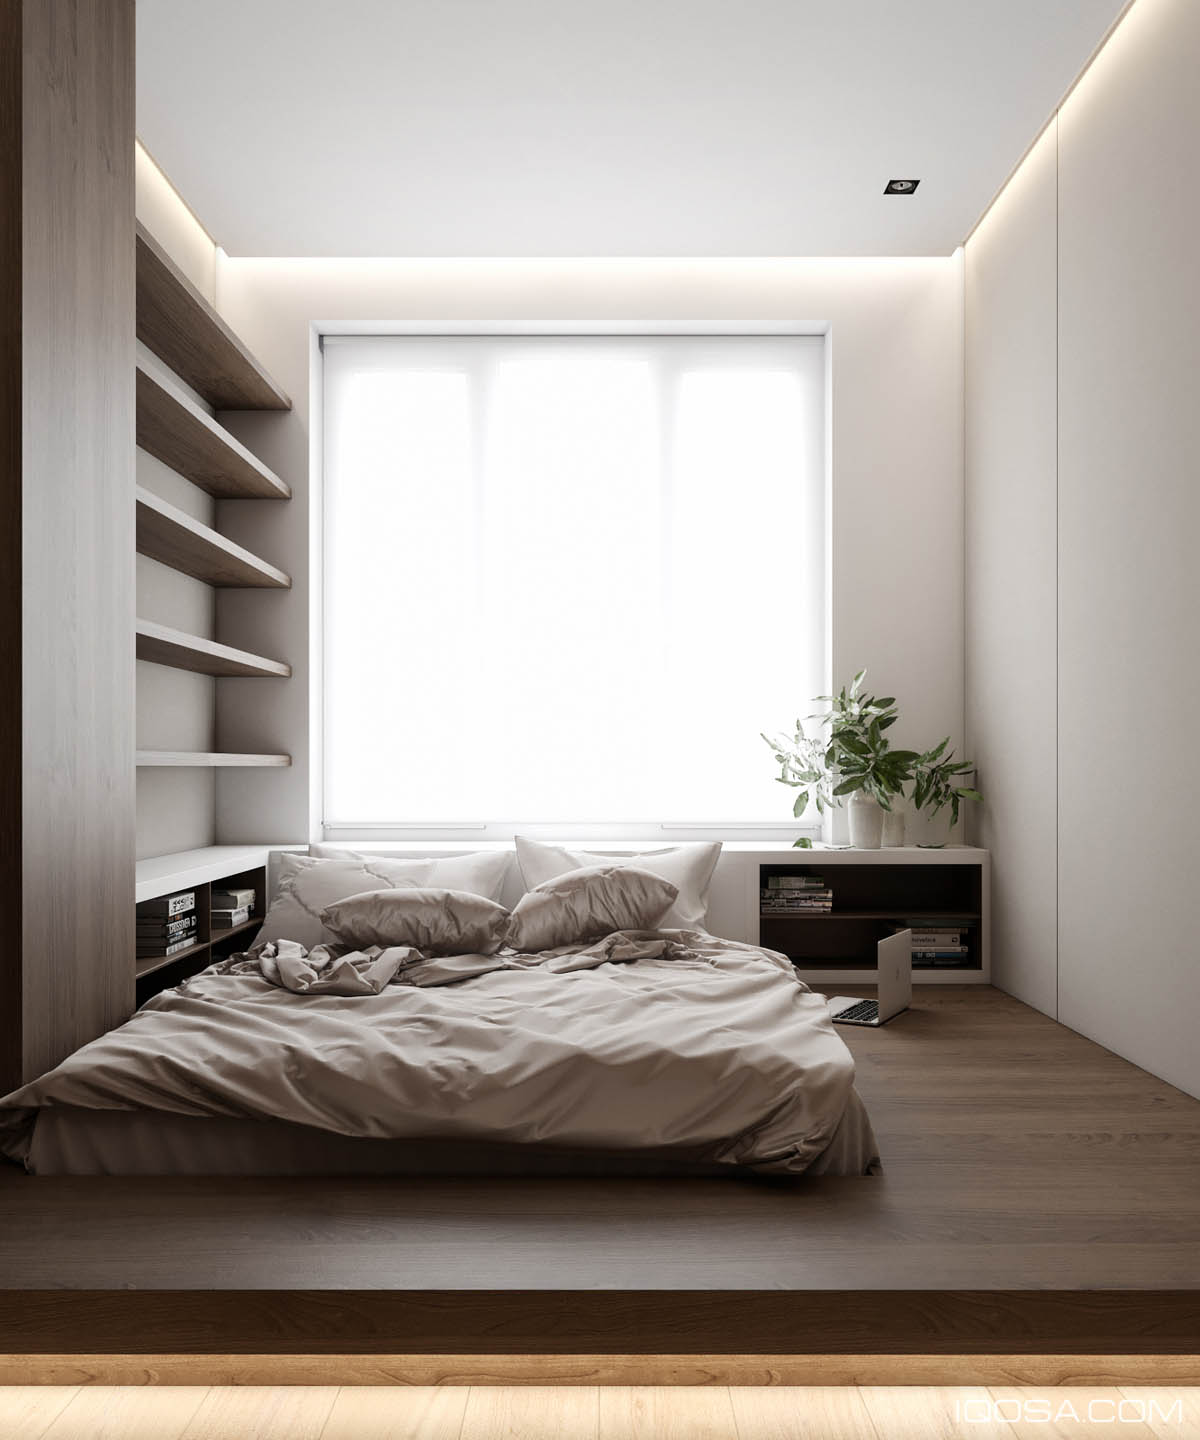 Stylish Storage Ideas For Small Bedrooms: Sophisticated Small Home Design Inspiration With Luxury